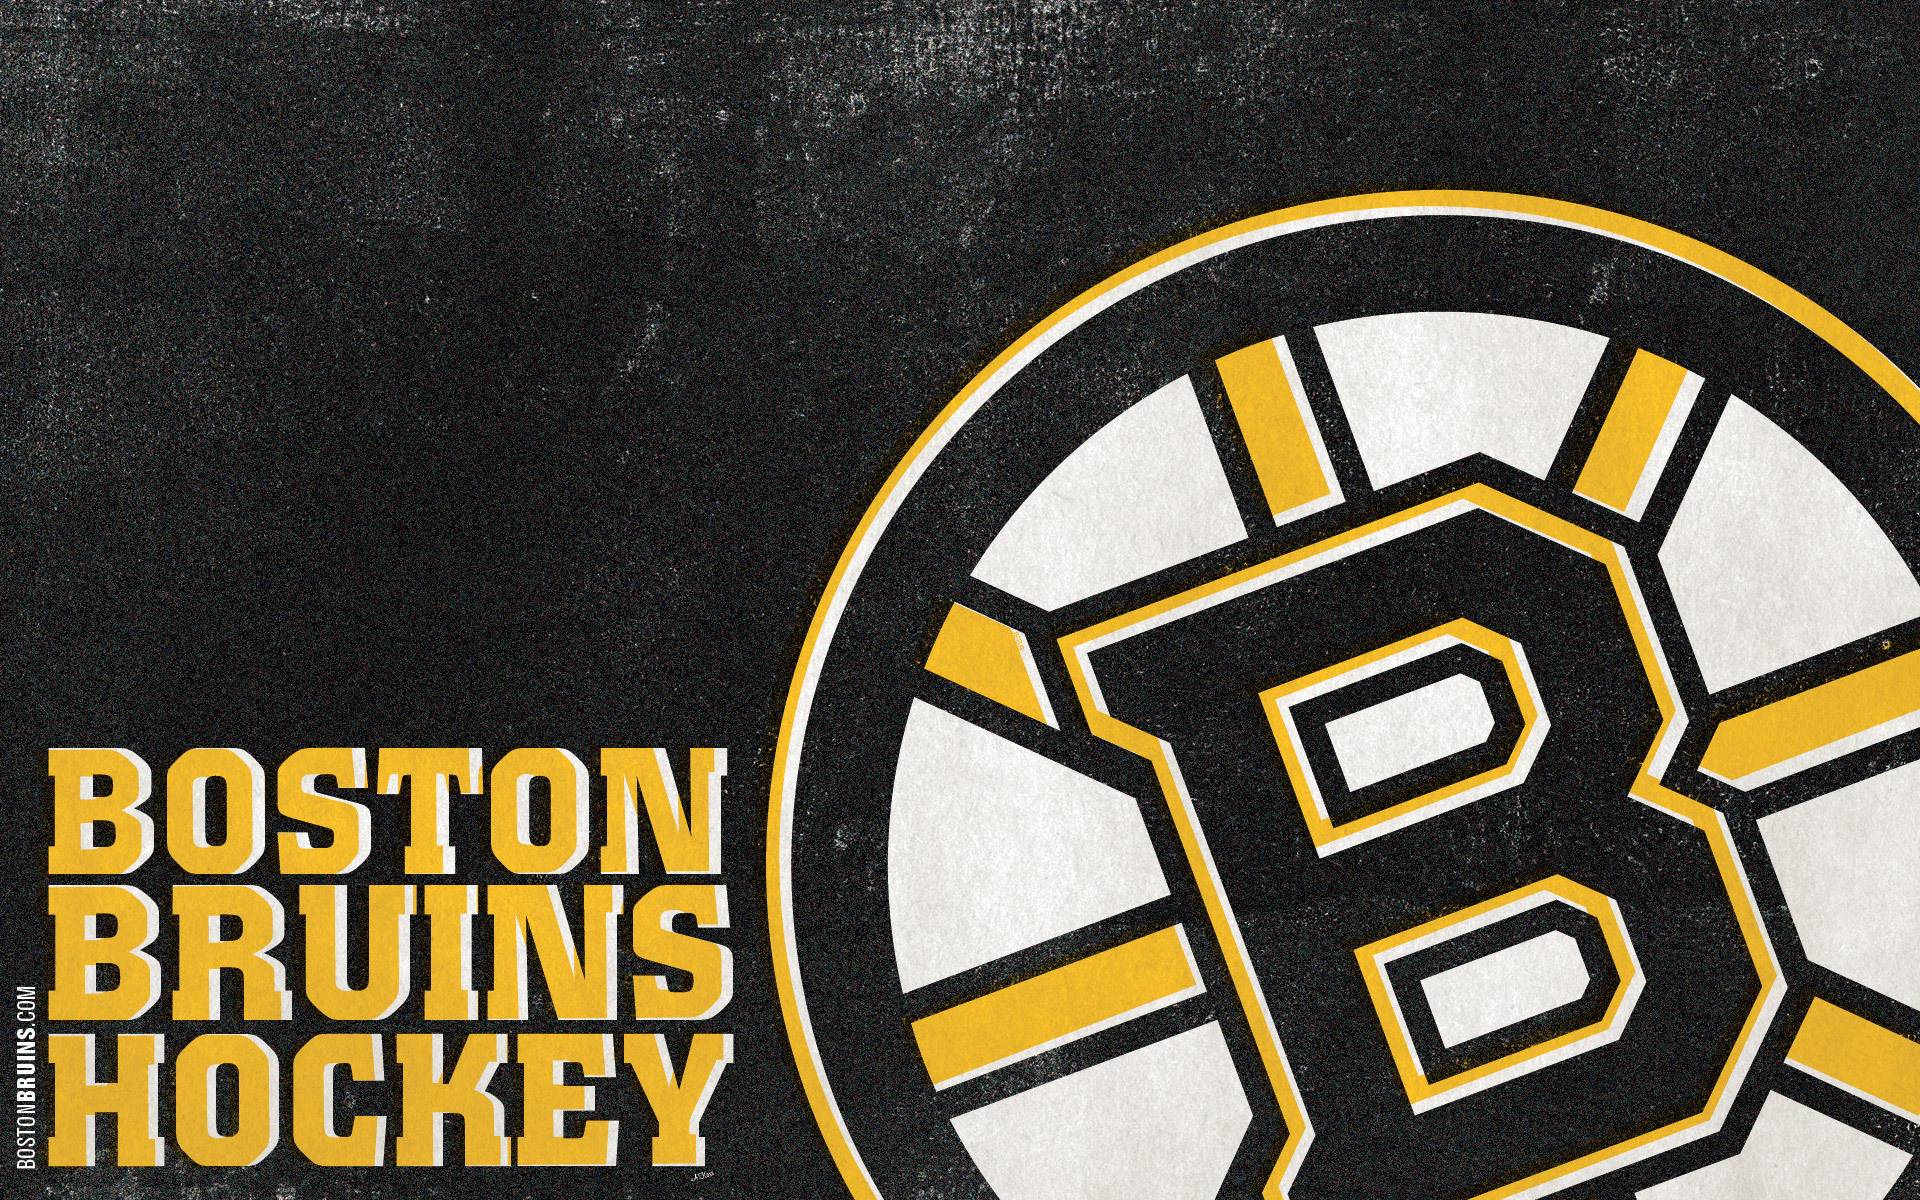 Boston Bruins wallpapers | Boston Bruins background - Page 3